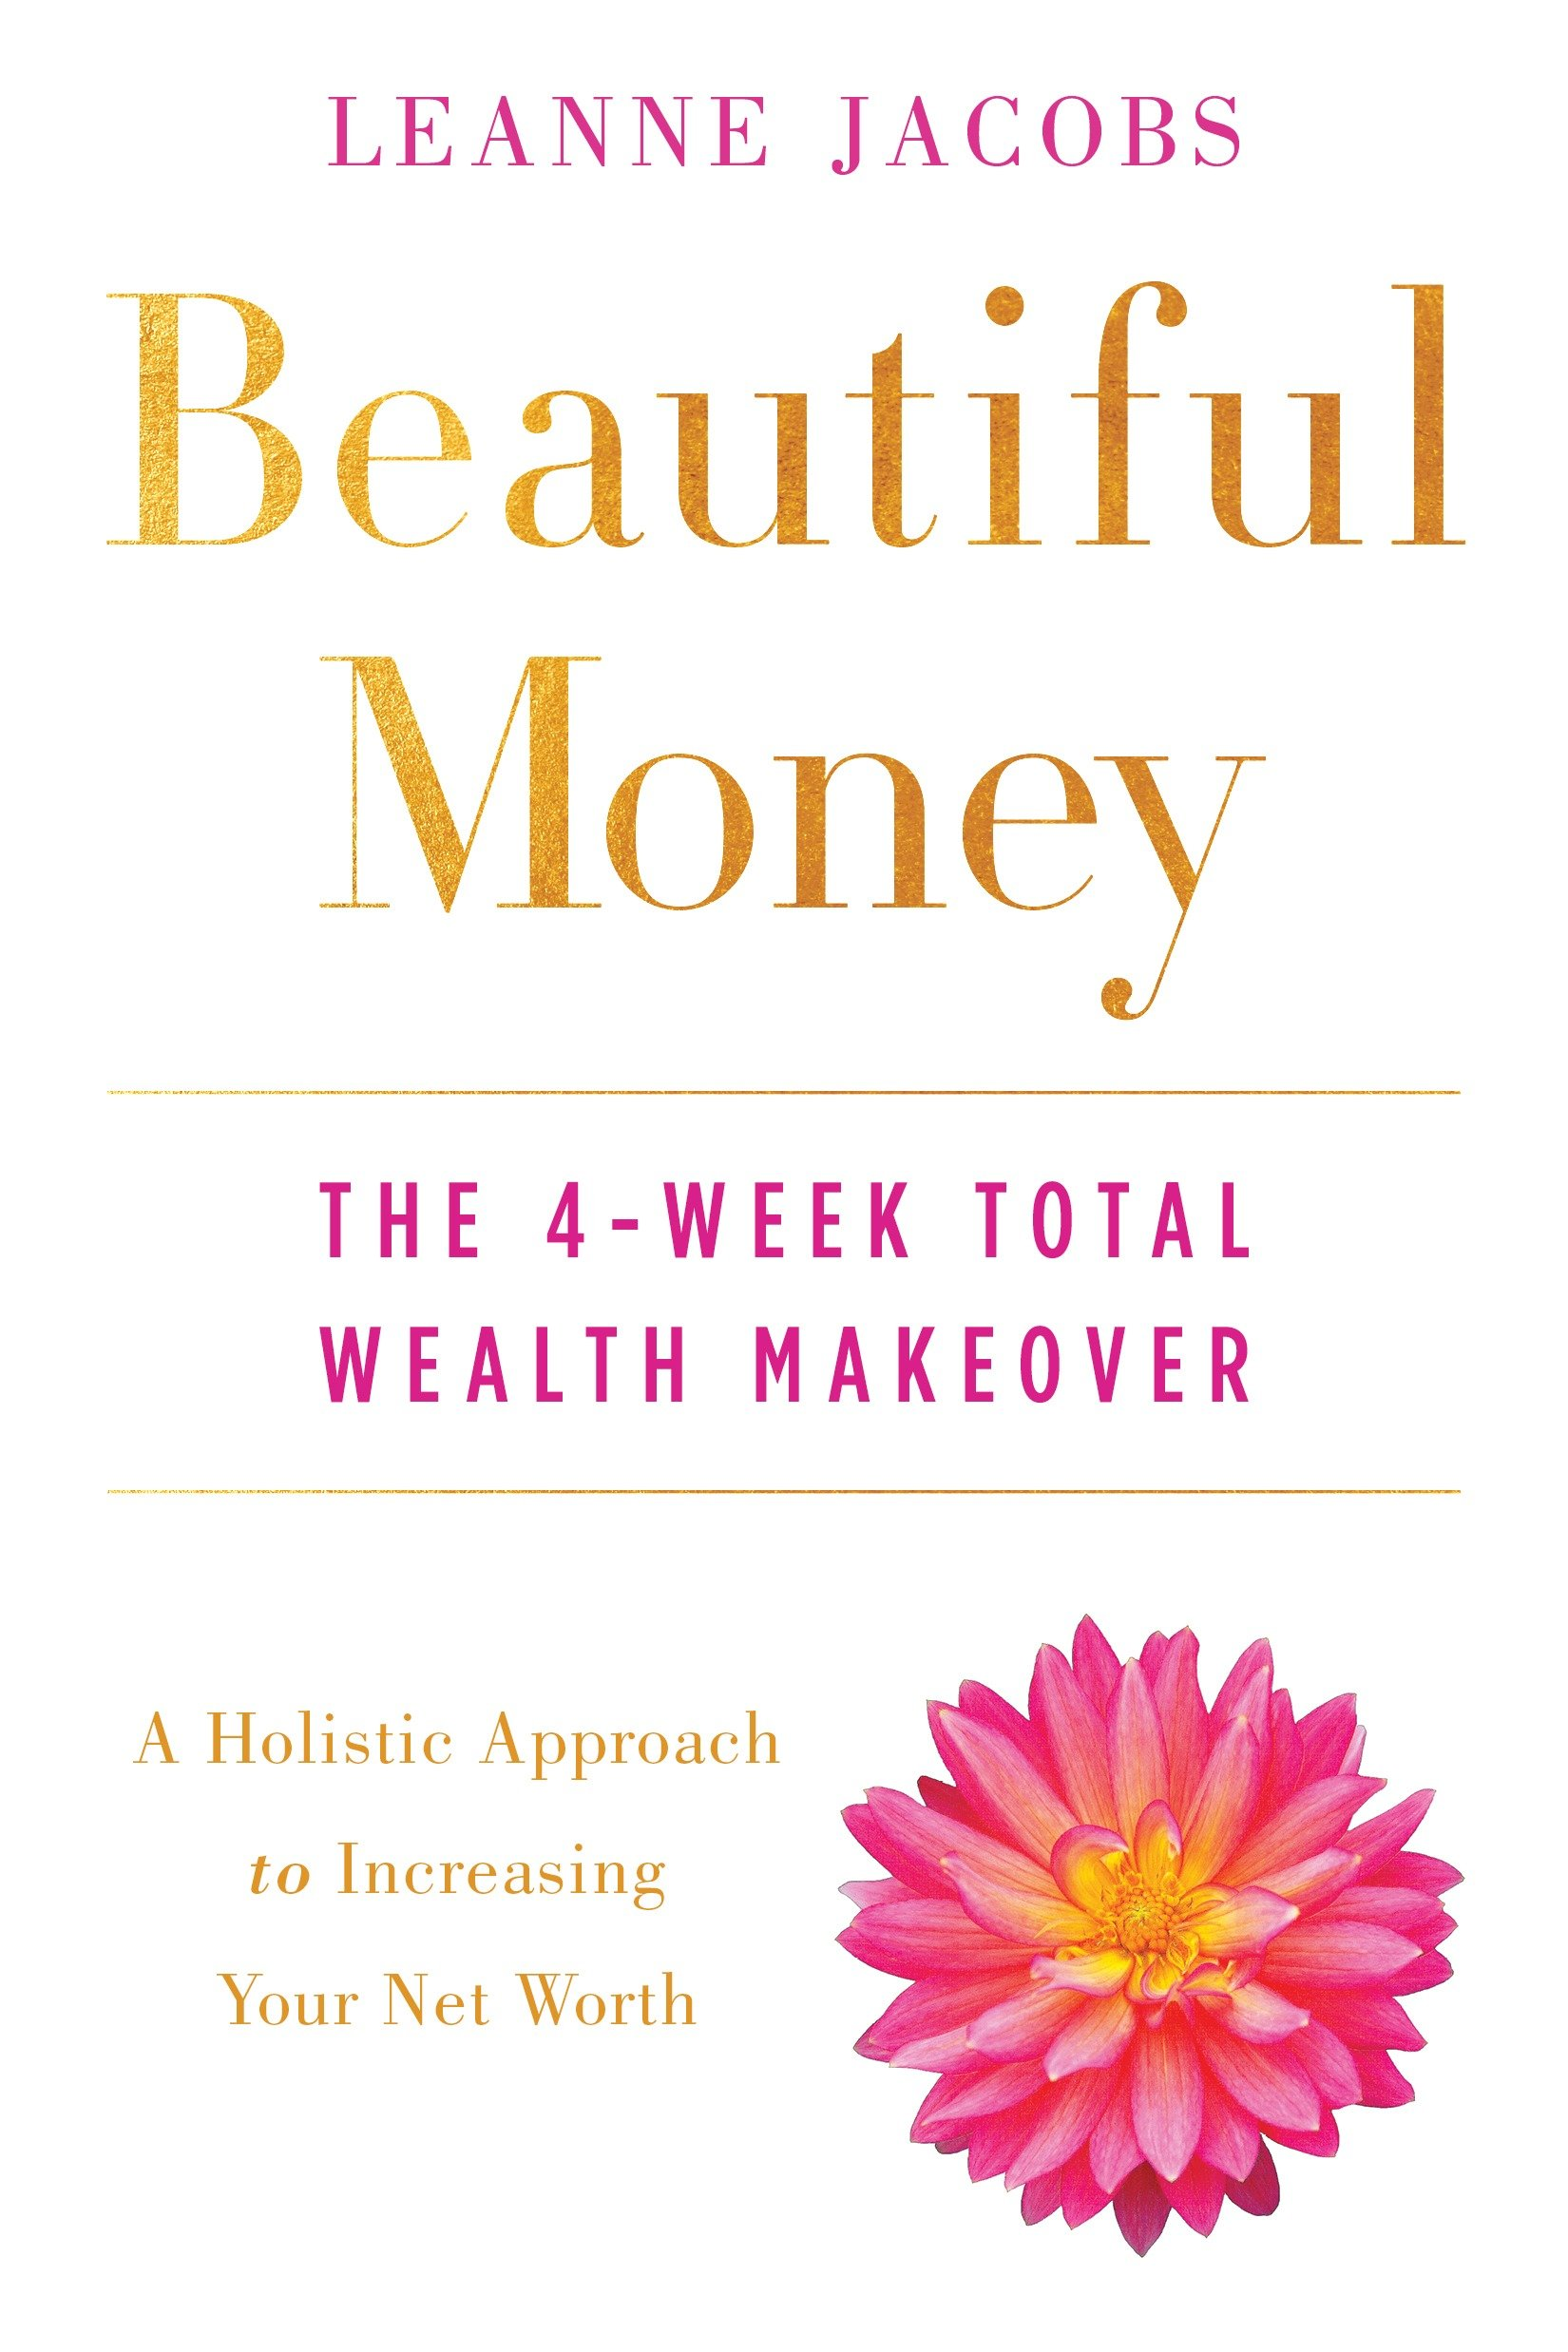 Beautiful Money The 4-Week Total Wealth Makeover